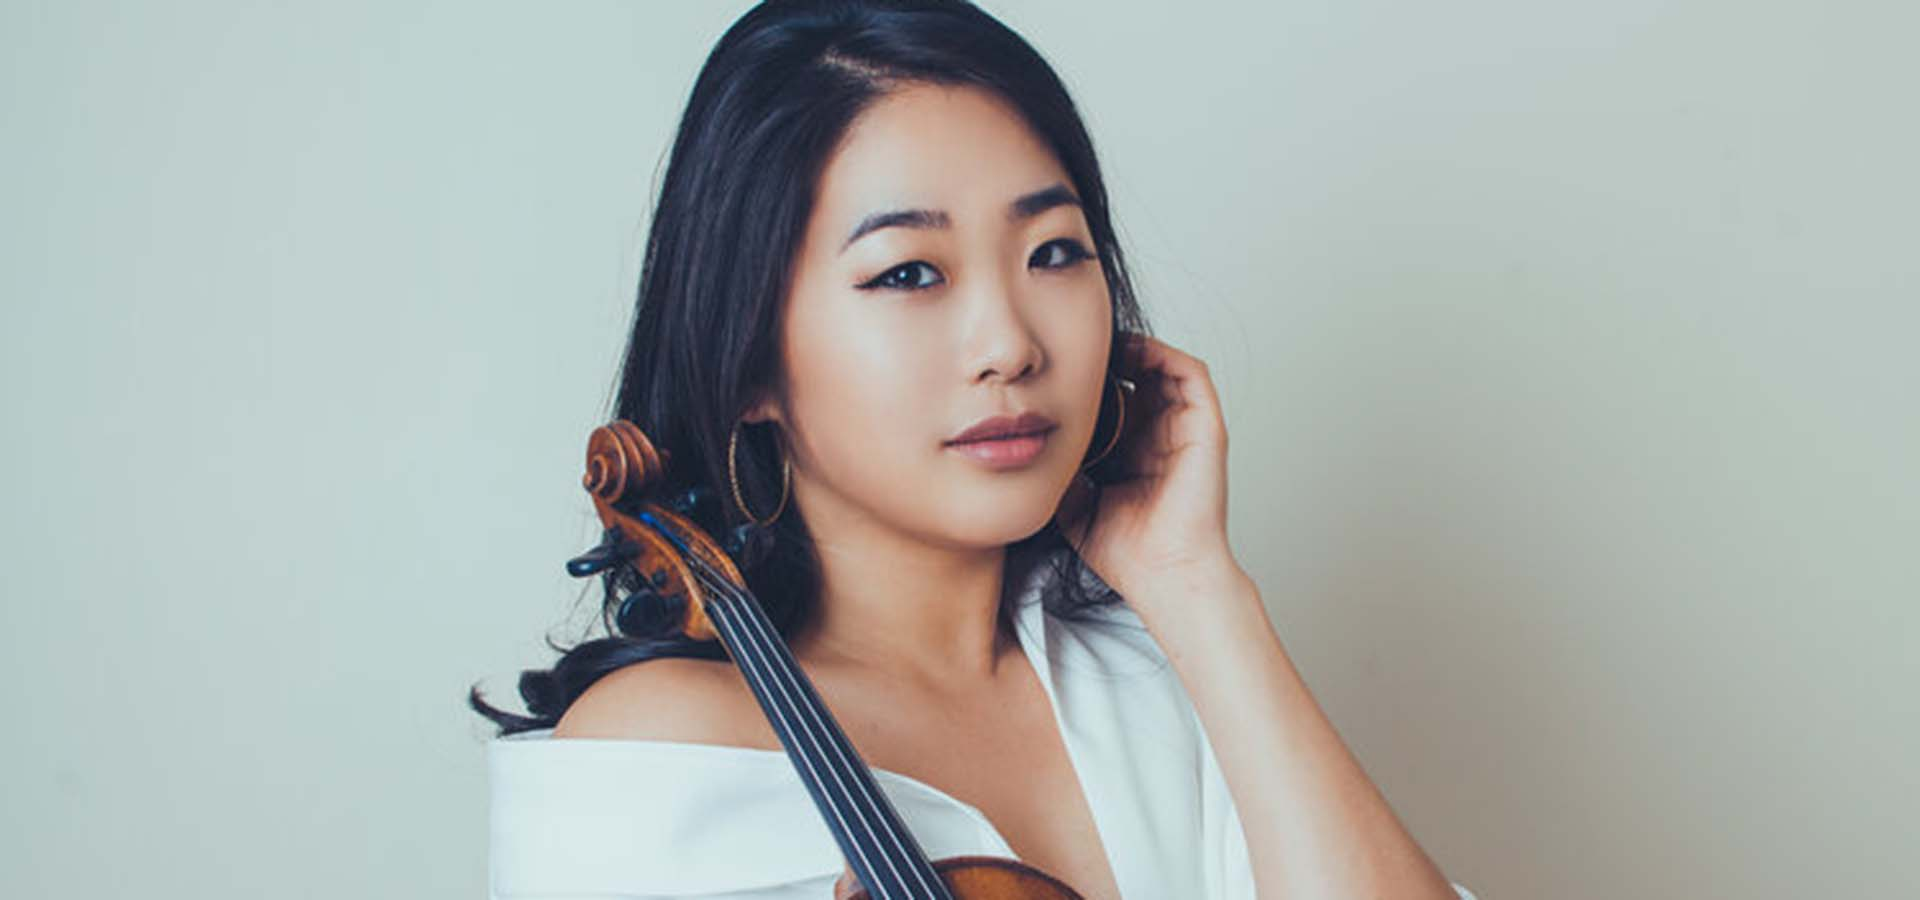 Asian women dressed in white holding a violin